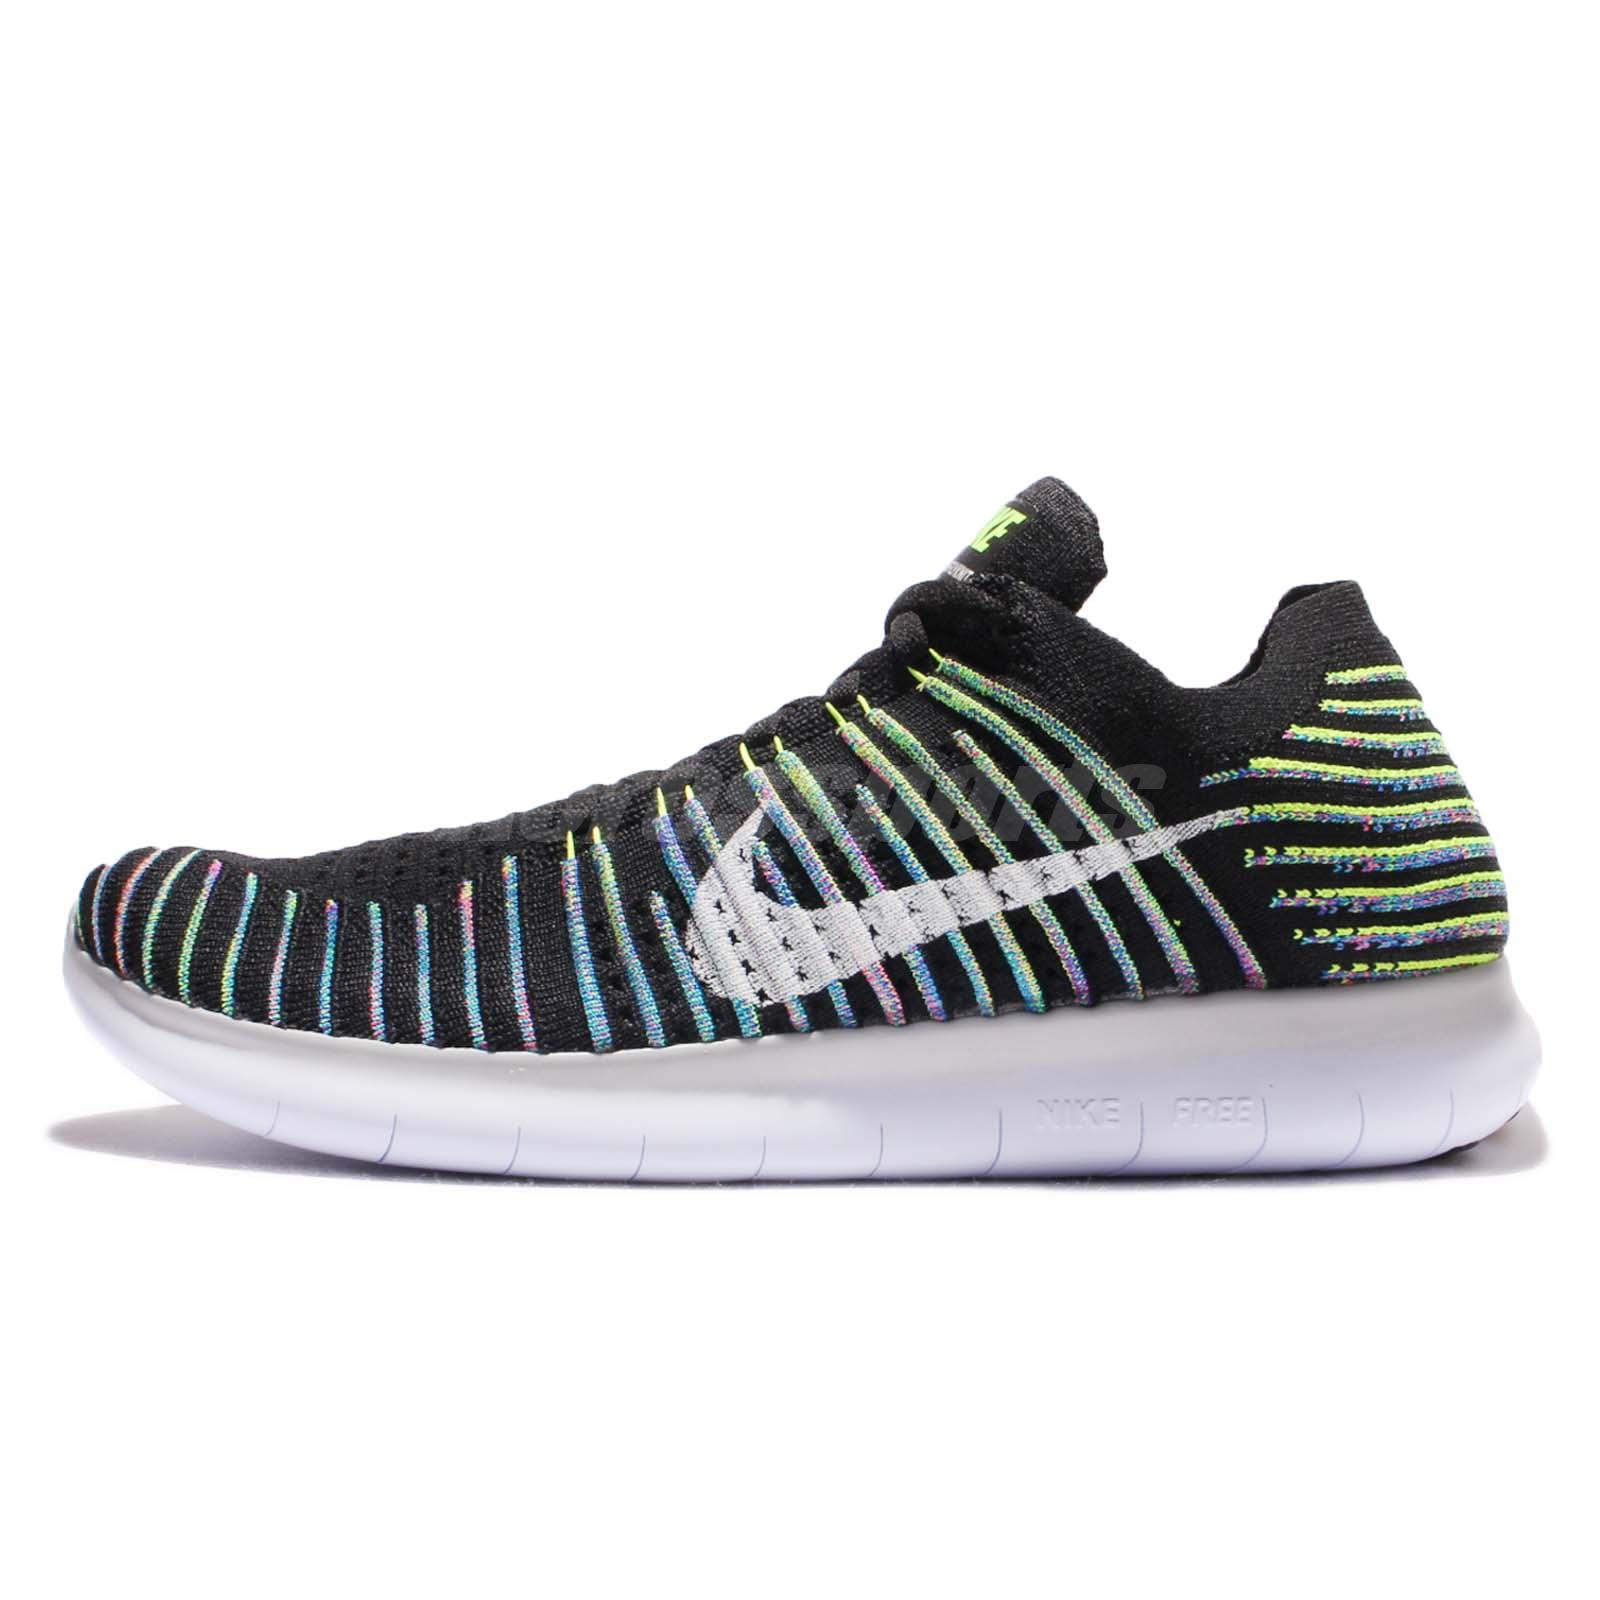 5006551a67dc Buy rainbow nike free - 59% OFF